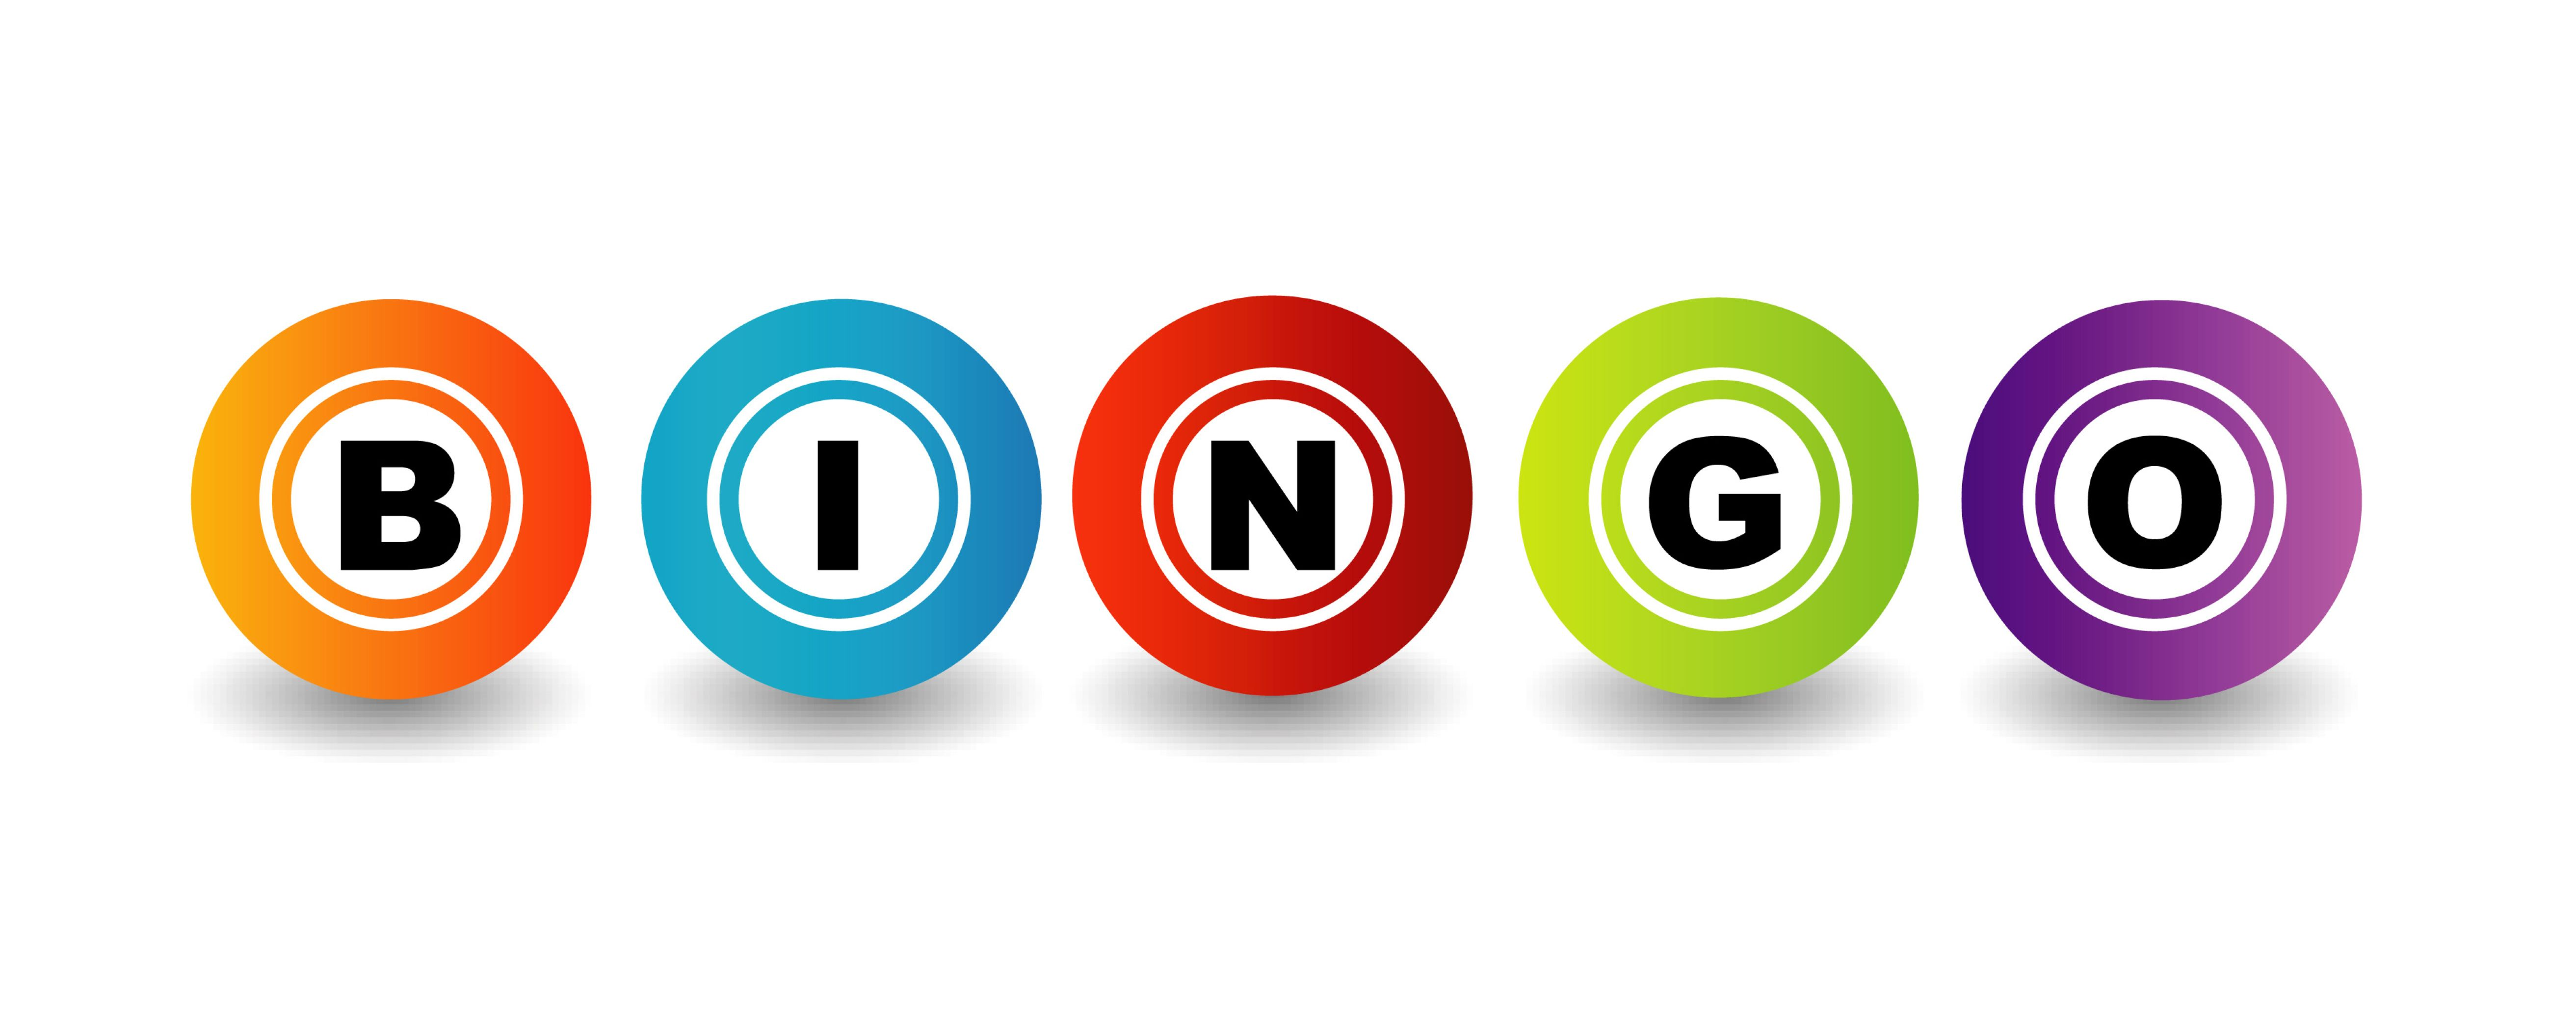 Image result for high resolution bingo clipart.